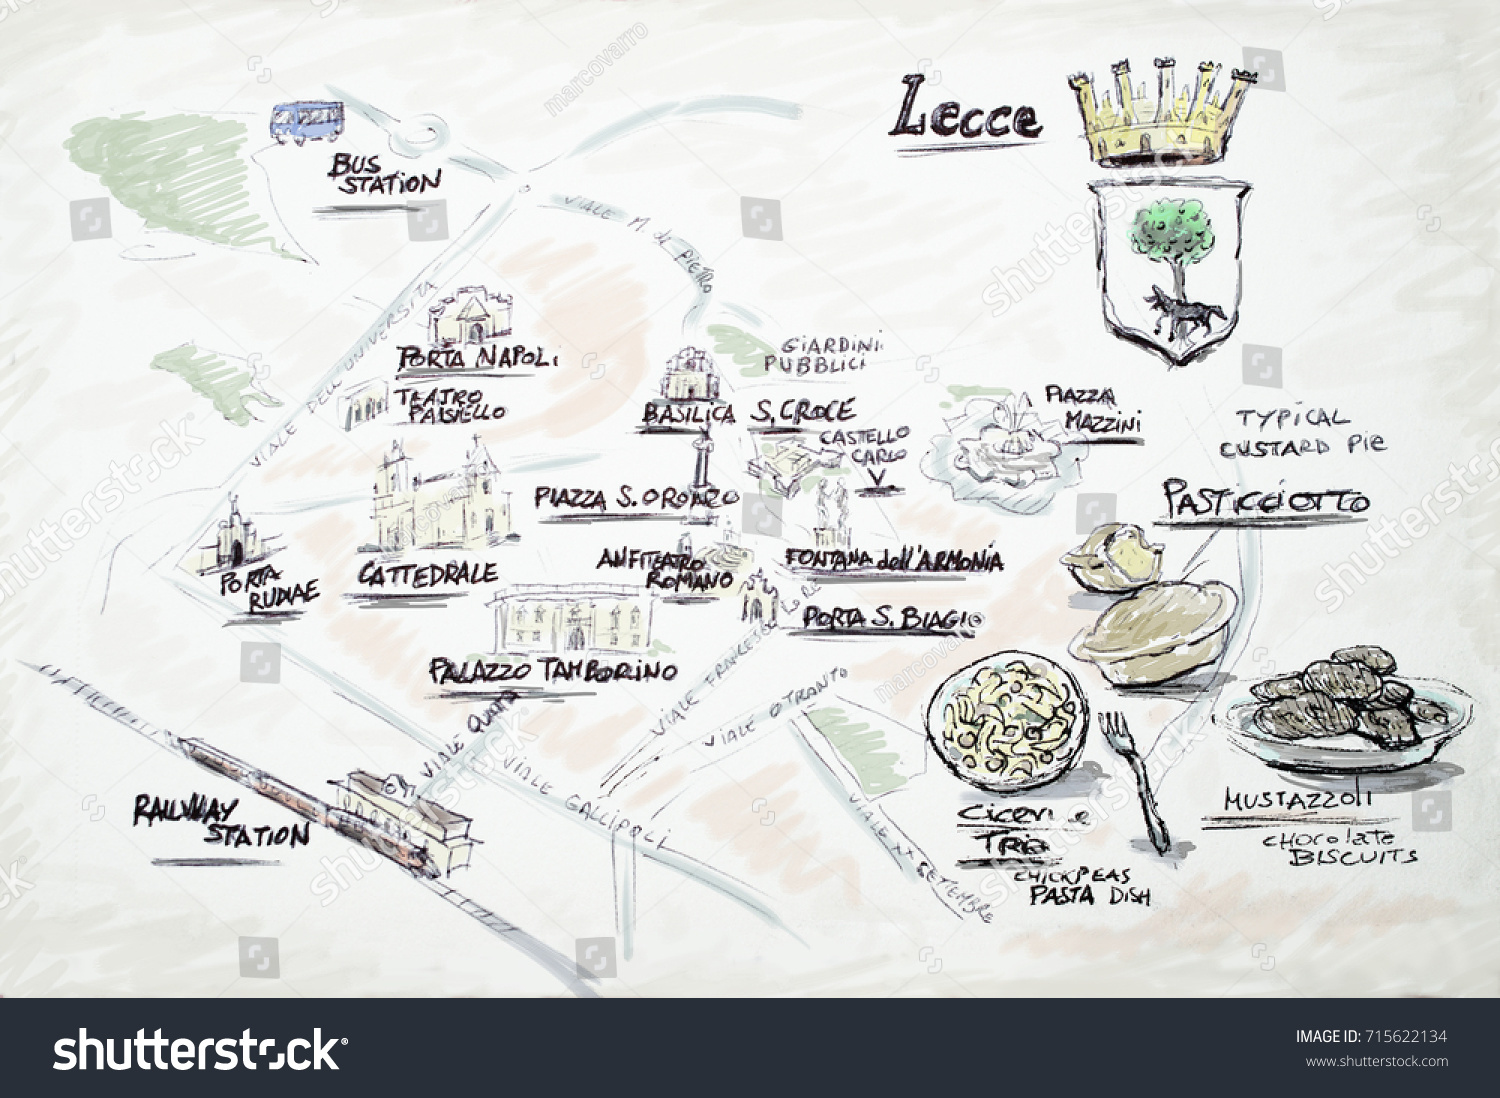 Sketch Illustration Map Lecce Town Italy Stock Illustration